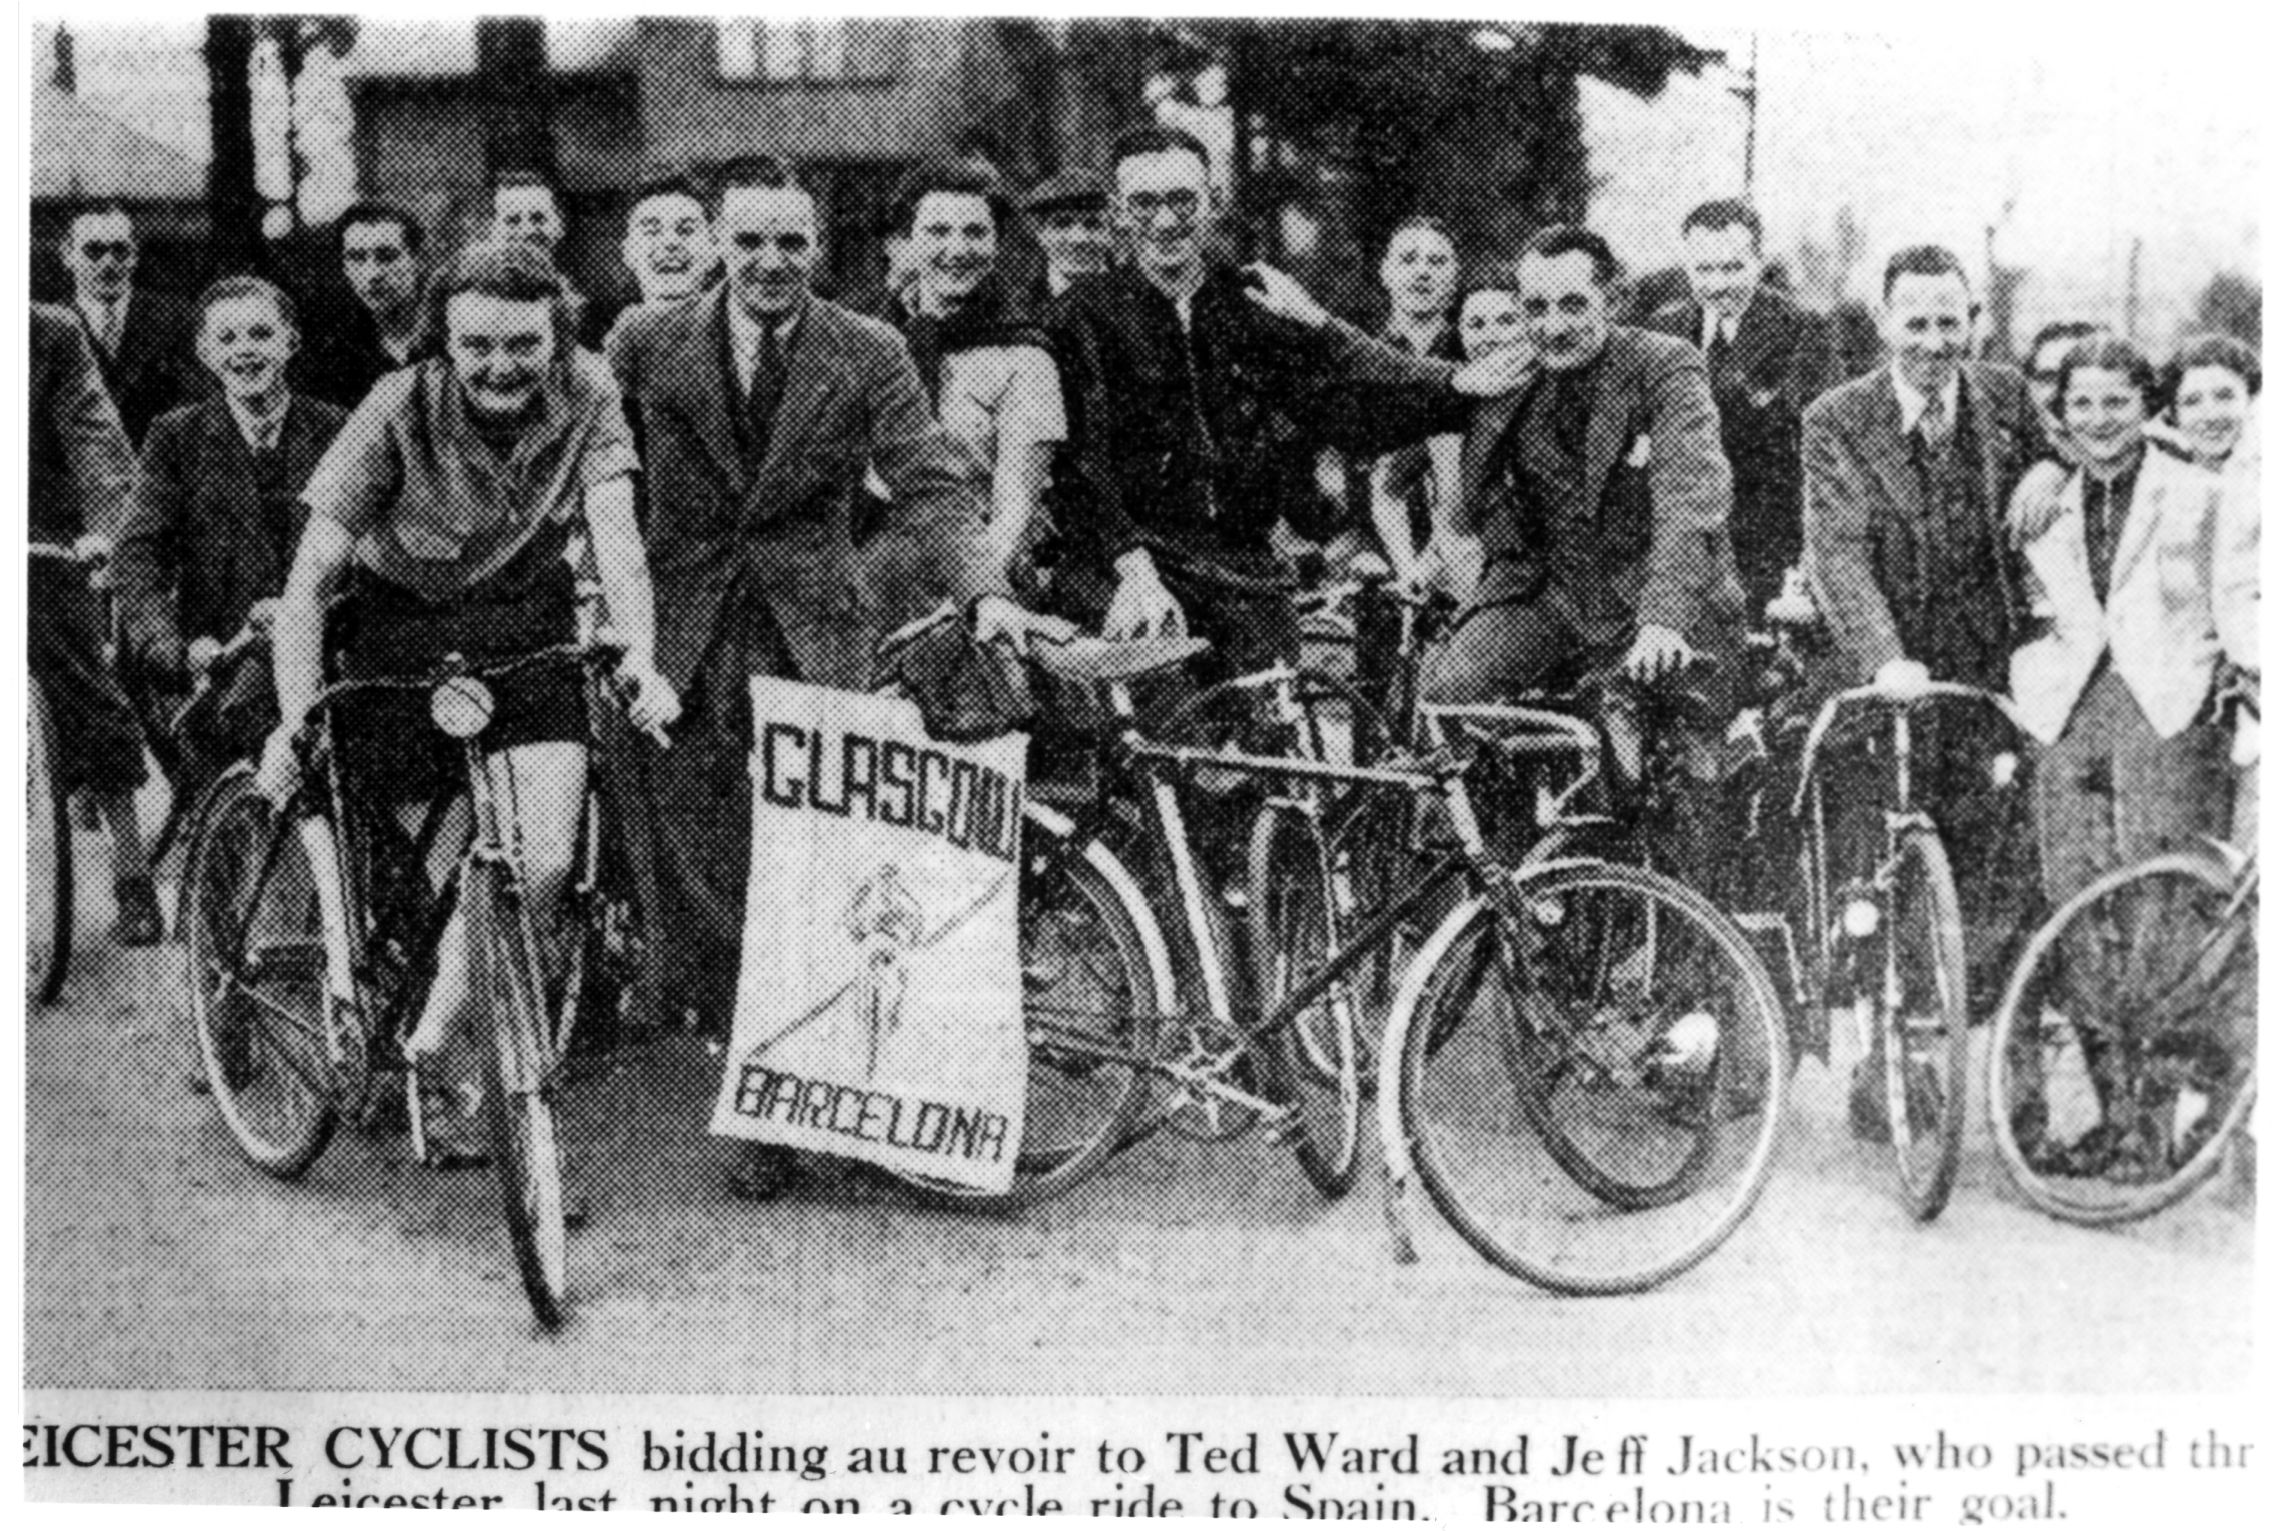 TedWard and geoff Jackson with supporters taken in Leicester in May 1938